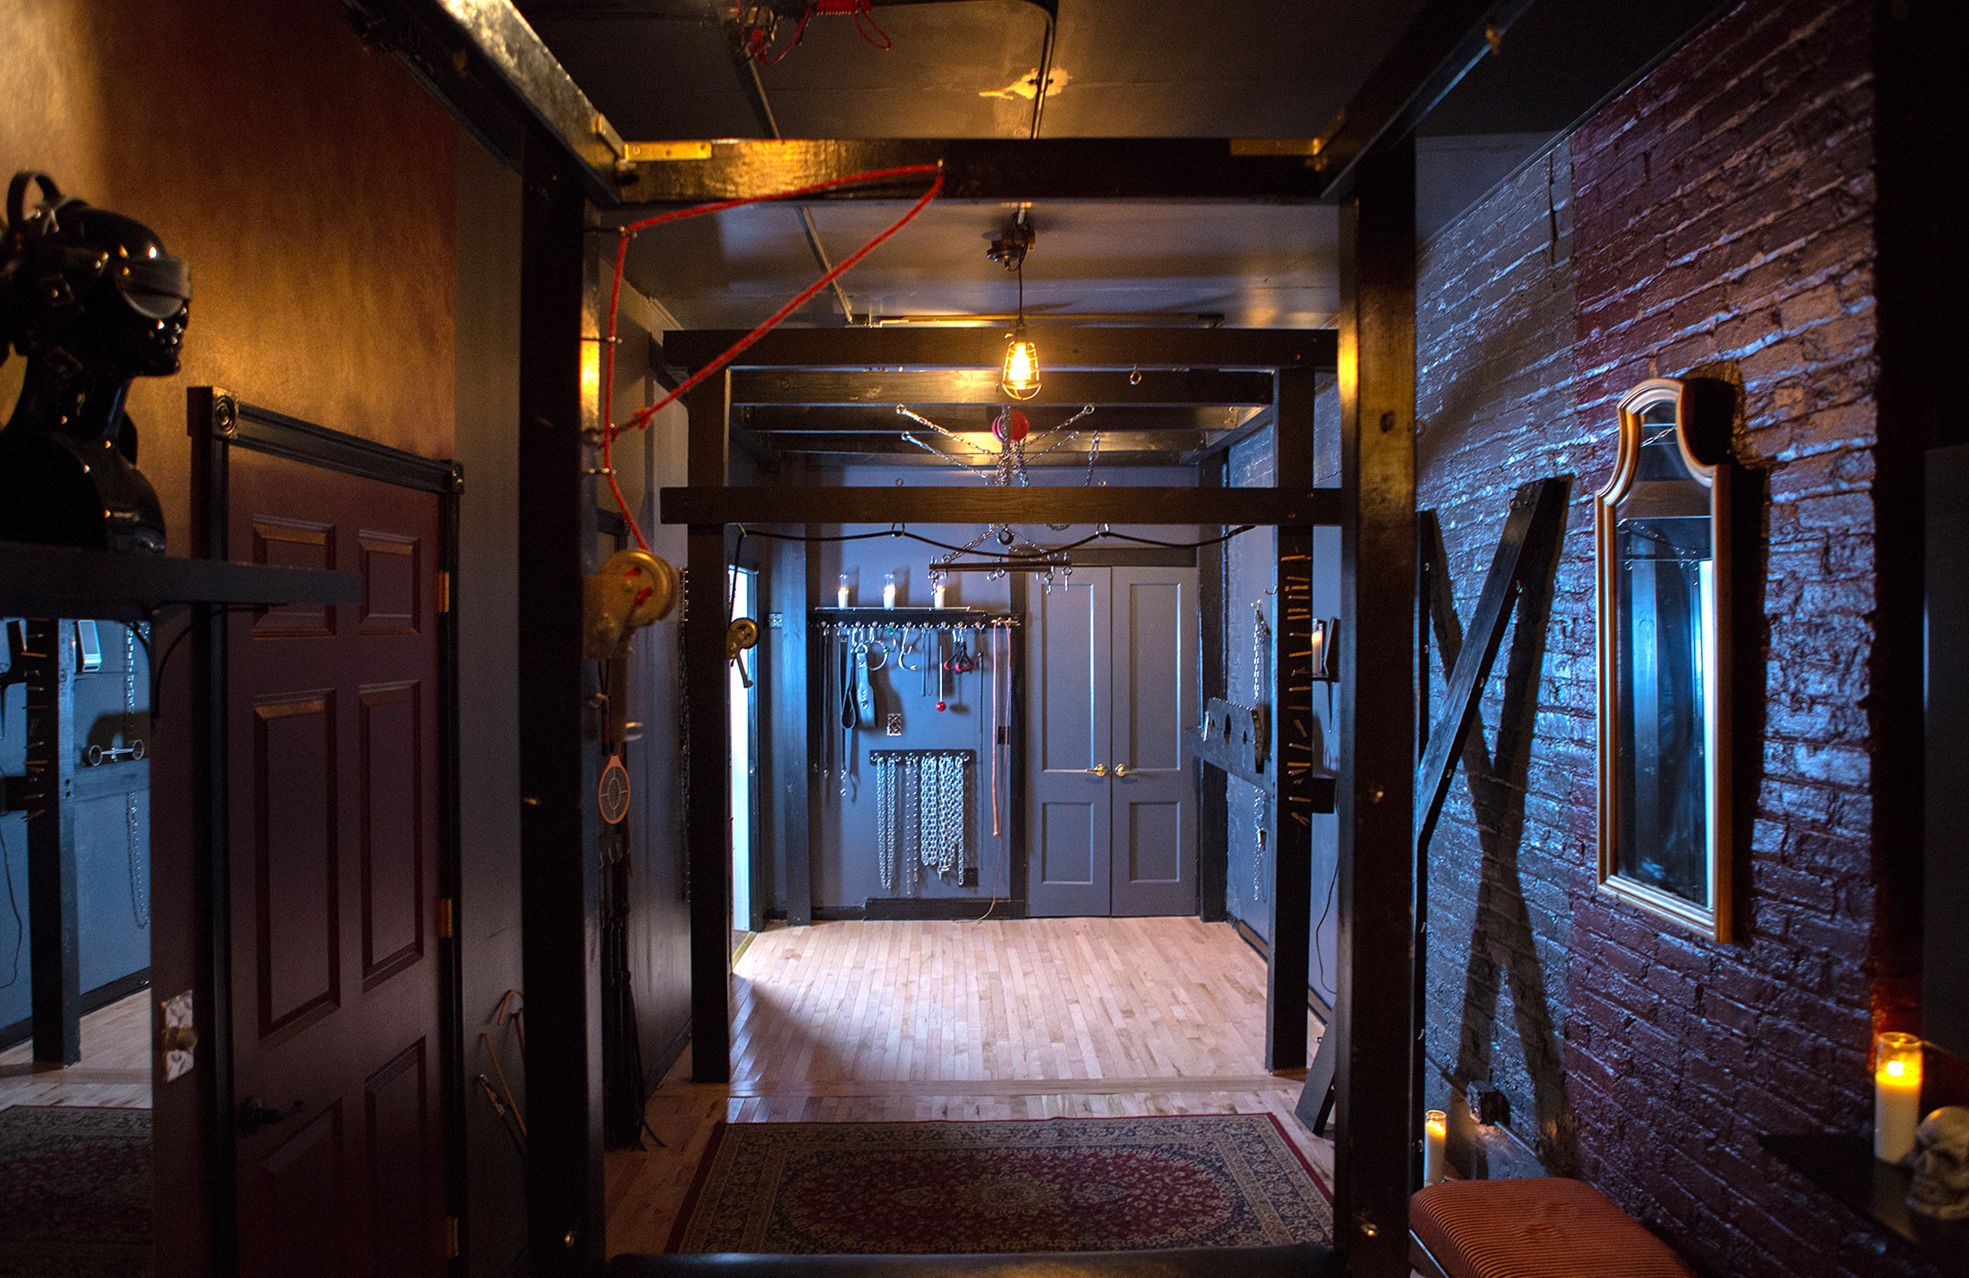 Bondage rooms